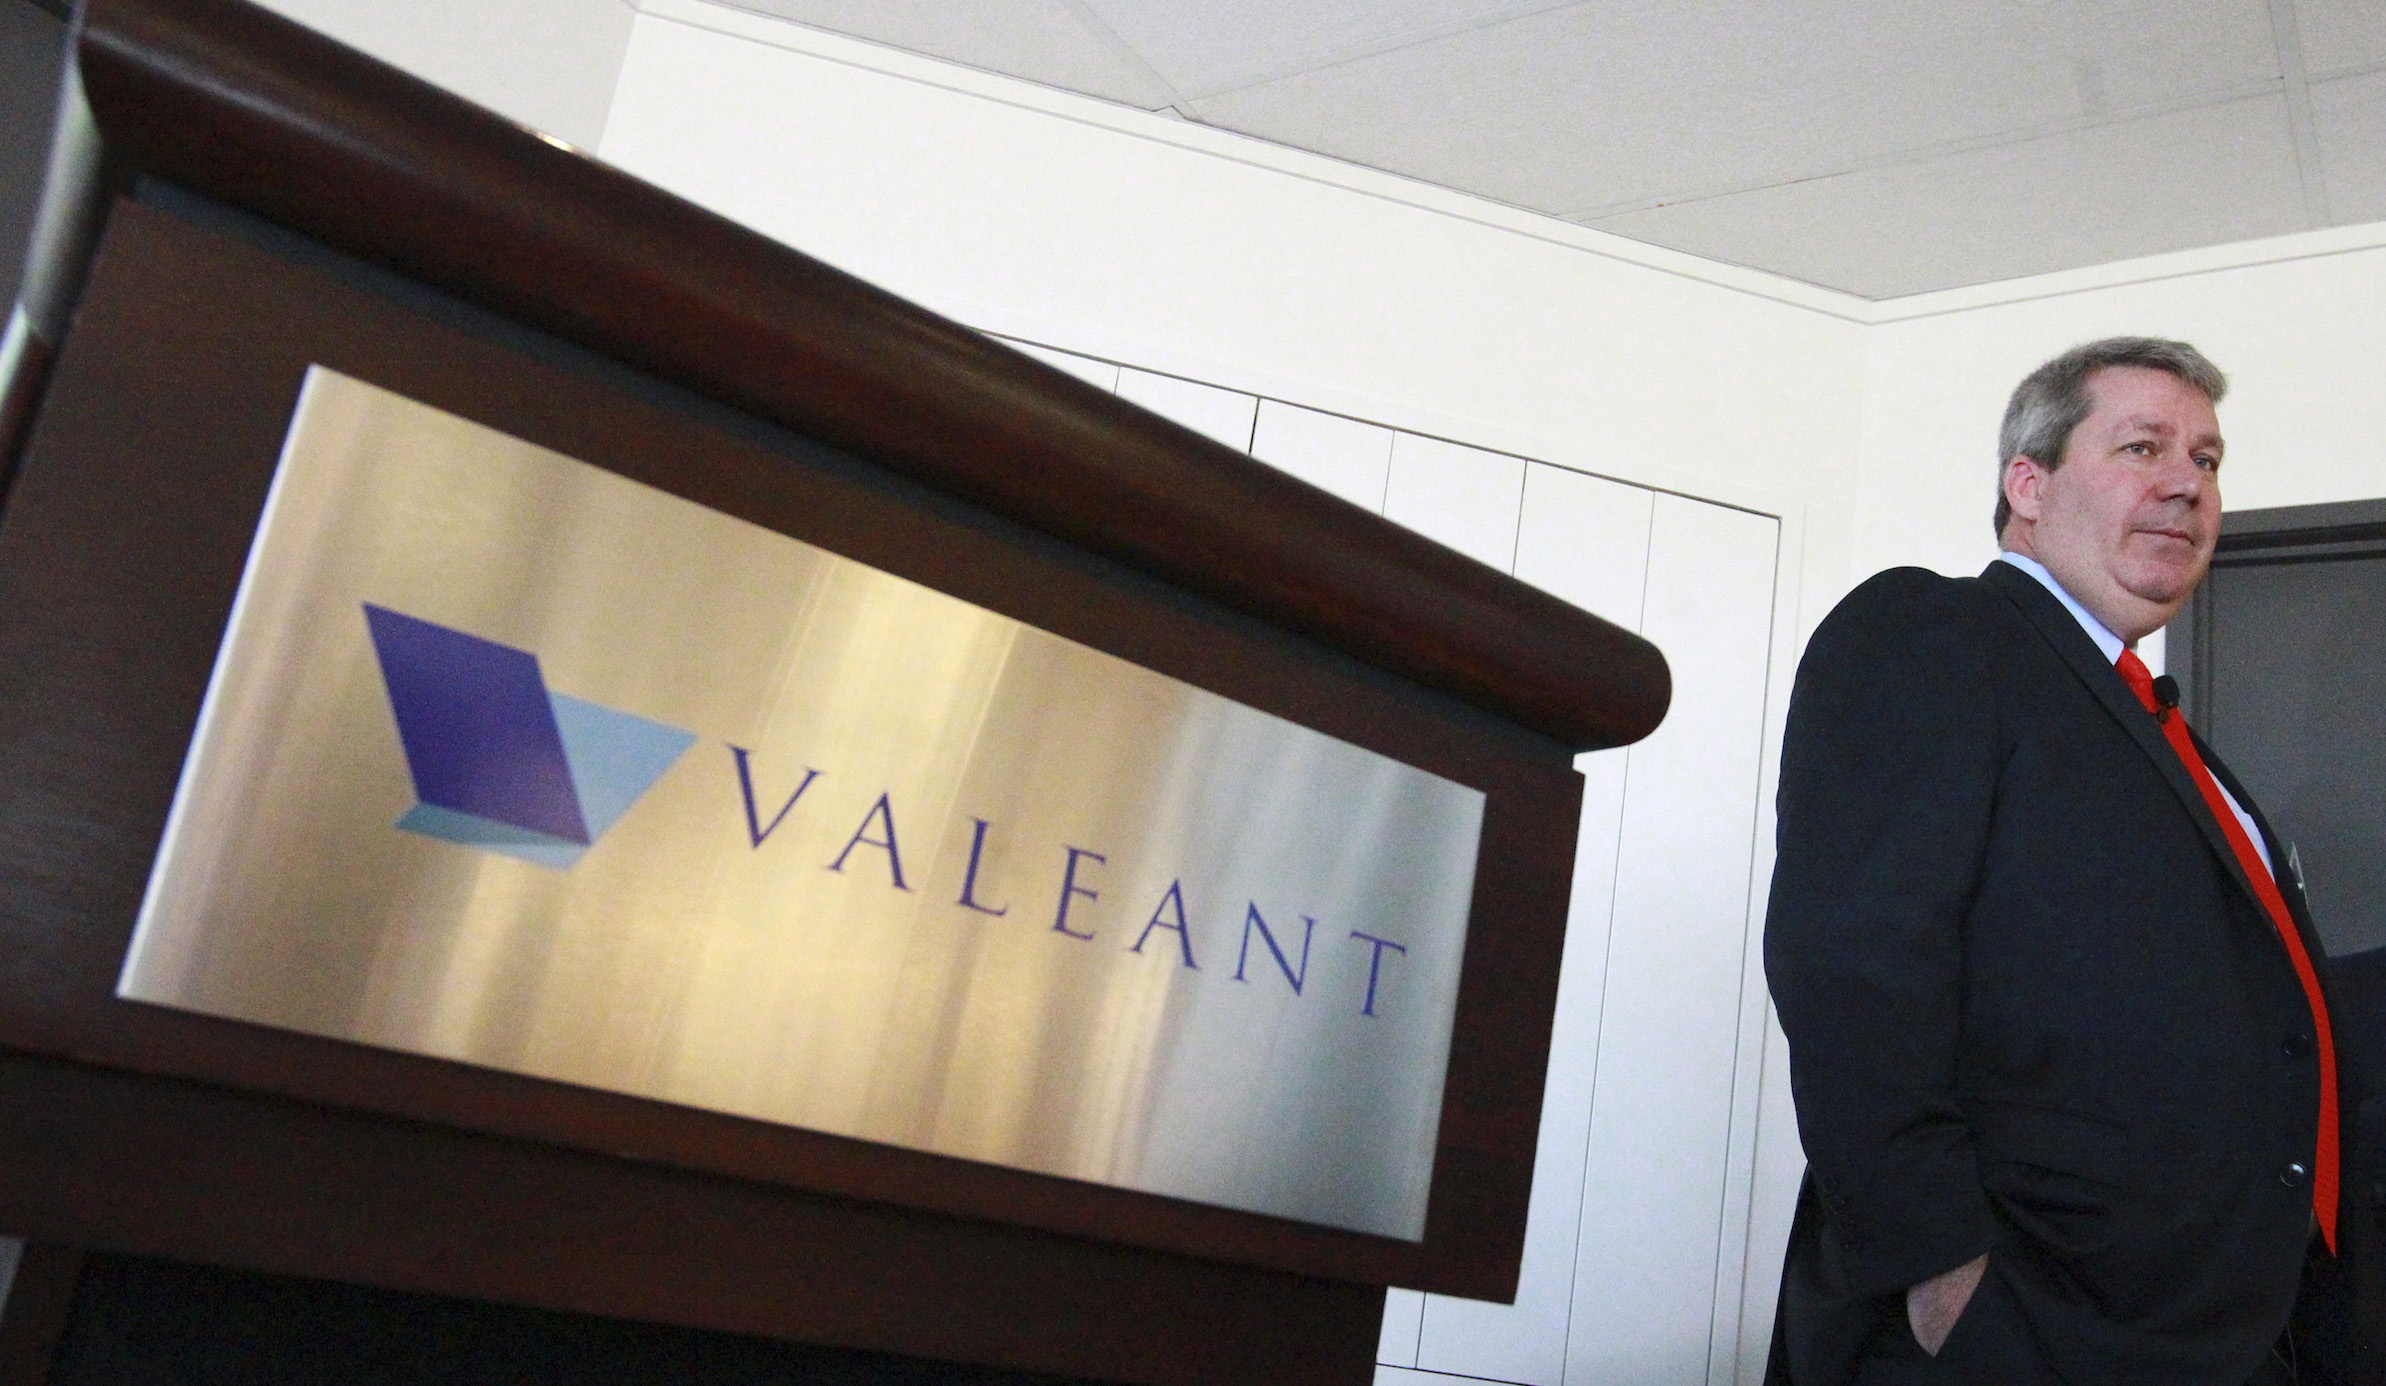 J. Michael Pearson, Chairman of the board and Chief Executive Officer of Valeant Pharmaceuticals International Inc., waits for the start of their annual general meeting in Laval, Quebec May 20, 2014. Canada's Valeant Pharmaceuticals International Inc said it will not make an all-cash bid for drugmaker Allergan Inc as many had expected last week when the company said it would improve its cash and stock offer for the Botox maker.    REUTERS/Christinne Muschi (CANADA - Tags: BUSINESS HEALTH) - RTR3Q13S